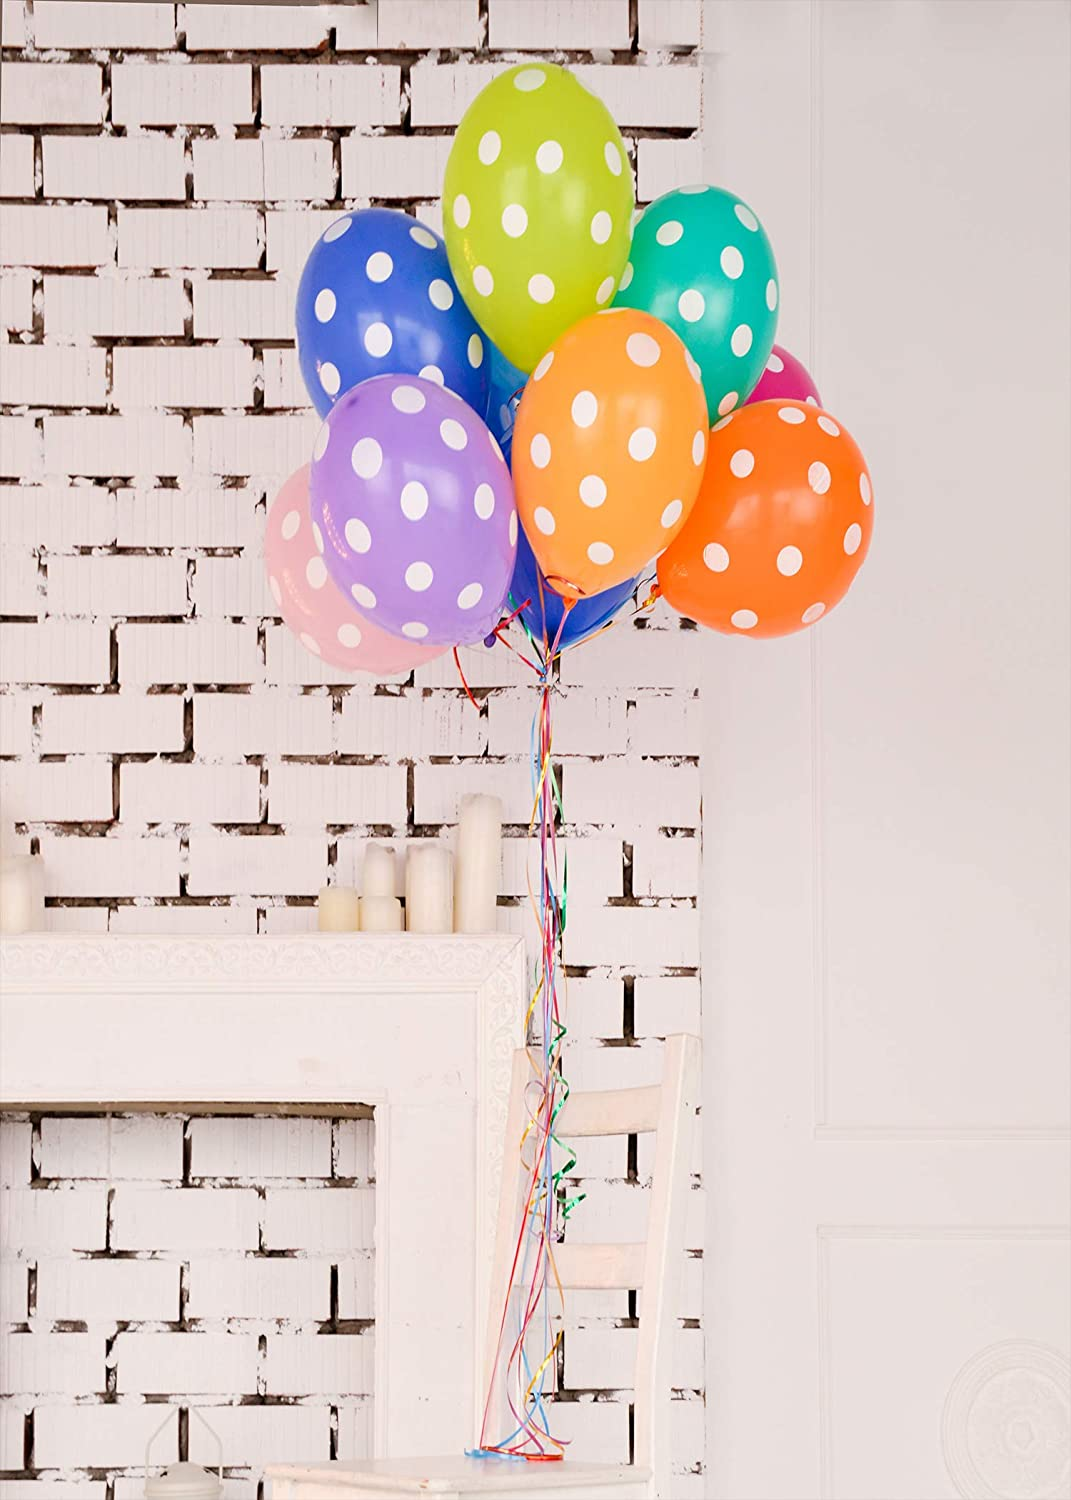 Happy Birthday Photography Background Brick Wall Colorful Balloons Backdrop Baby Shower Backdrop Girl Boy Kids Children Birthday Party Art Studio Photo Booth Background Props 5x7FT E00T9142